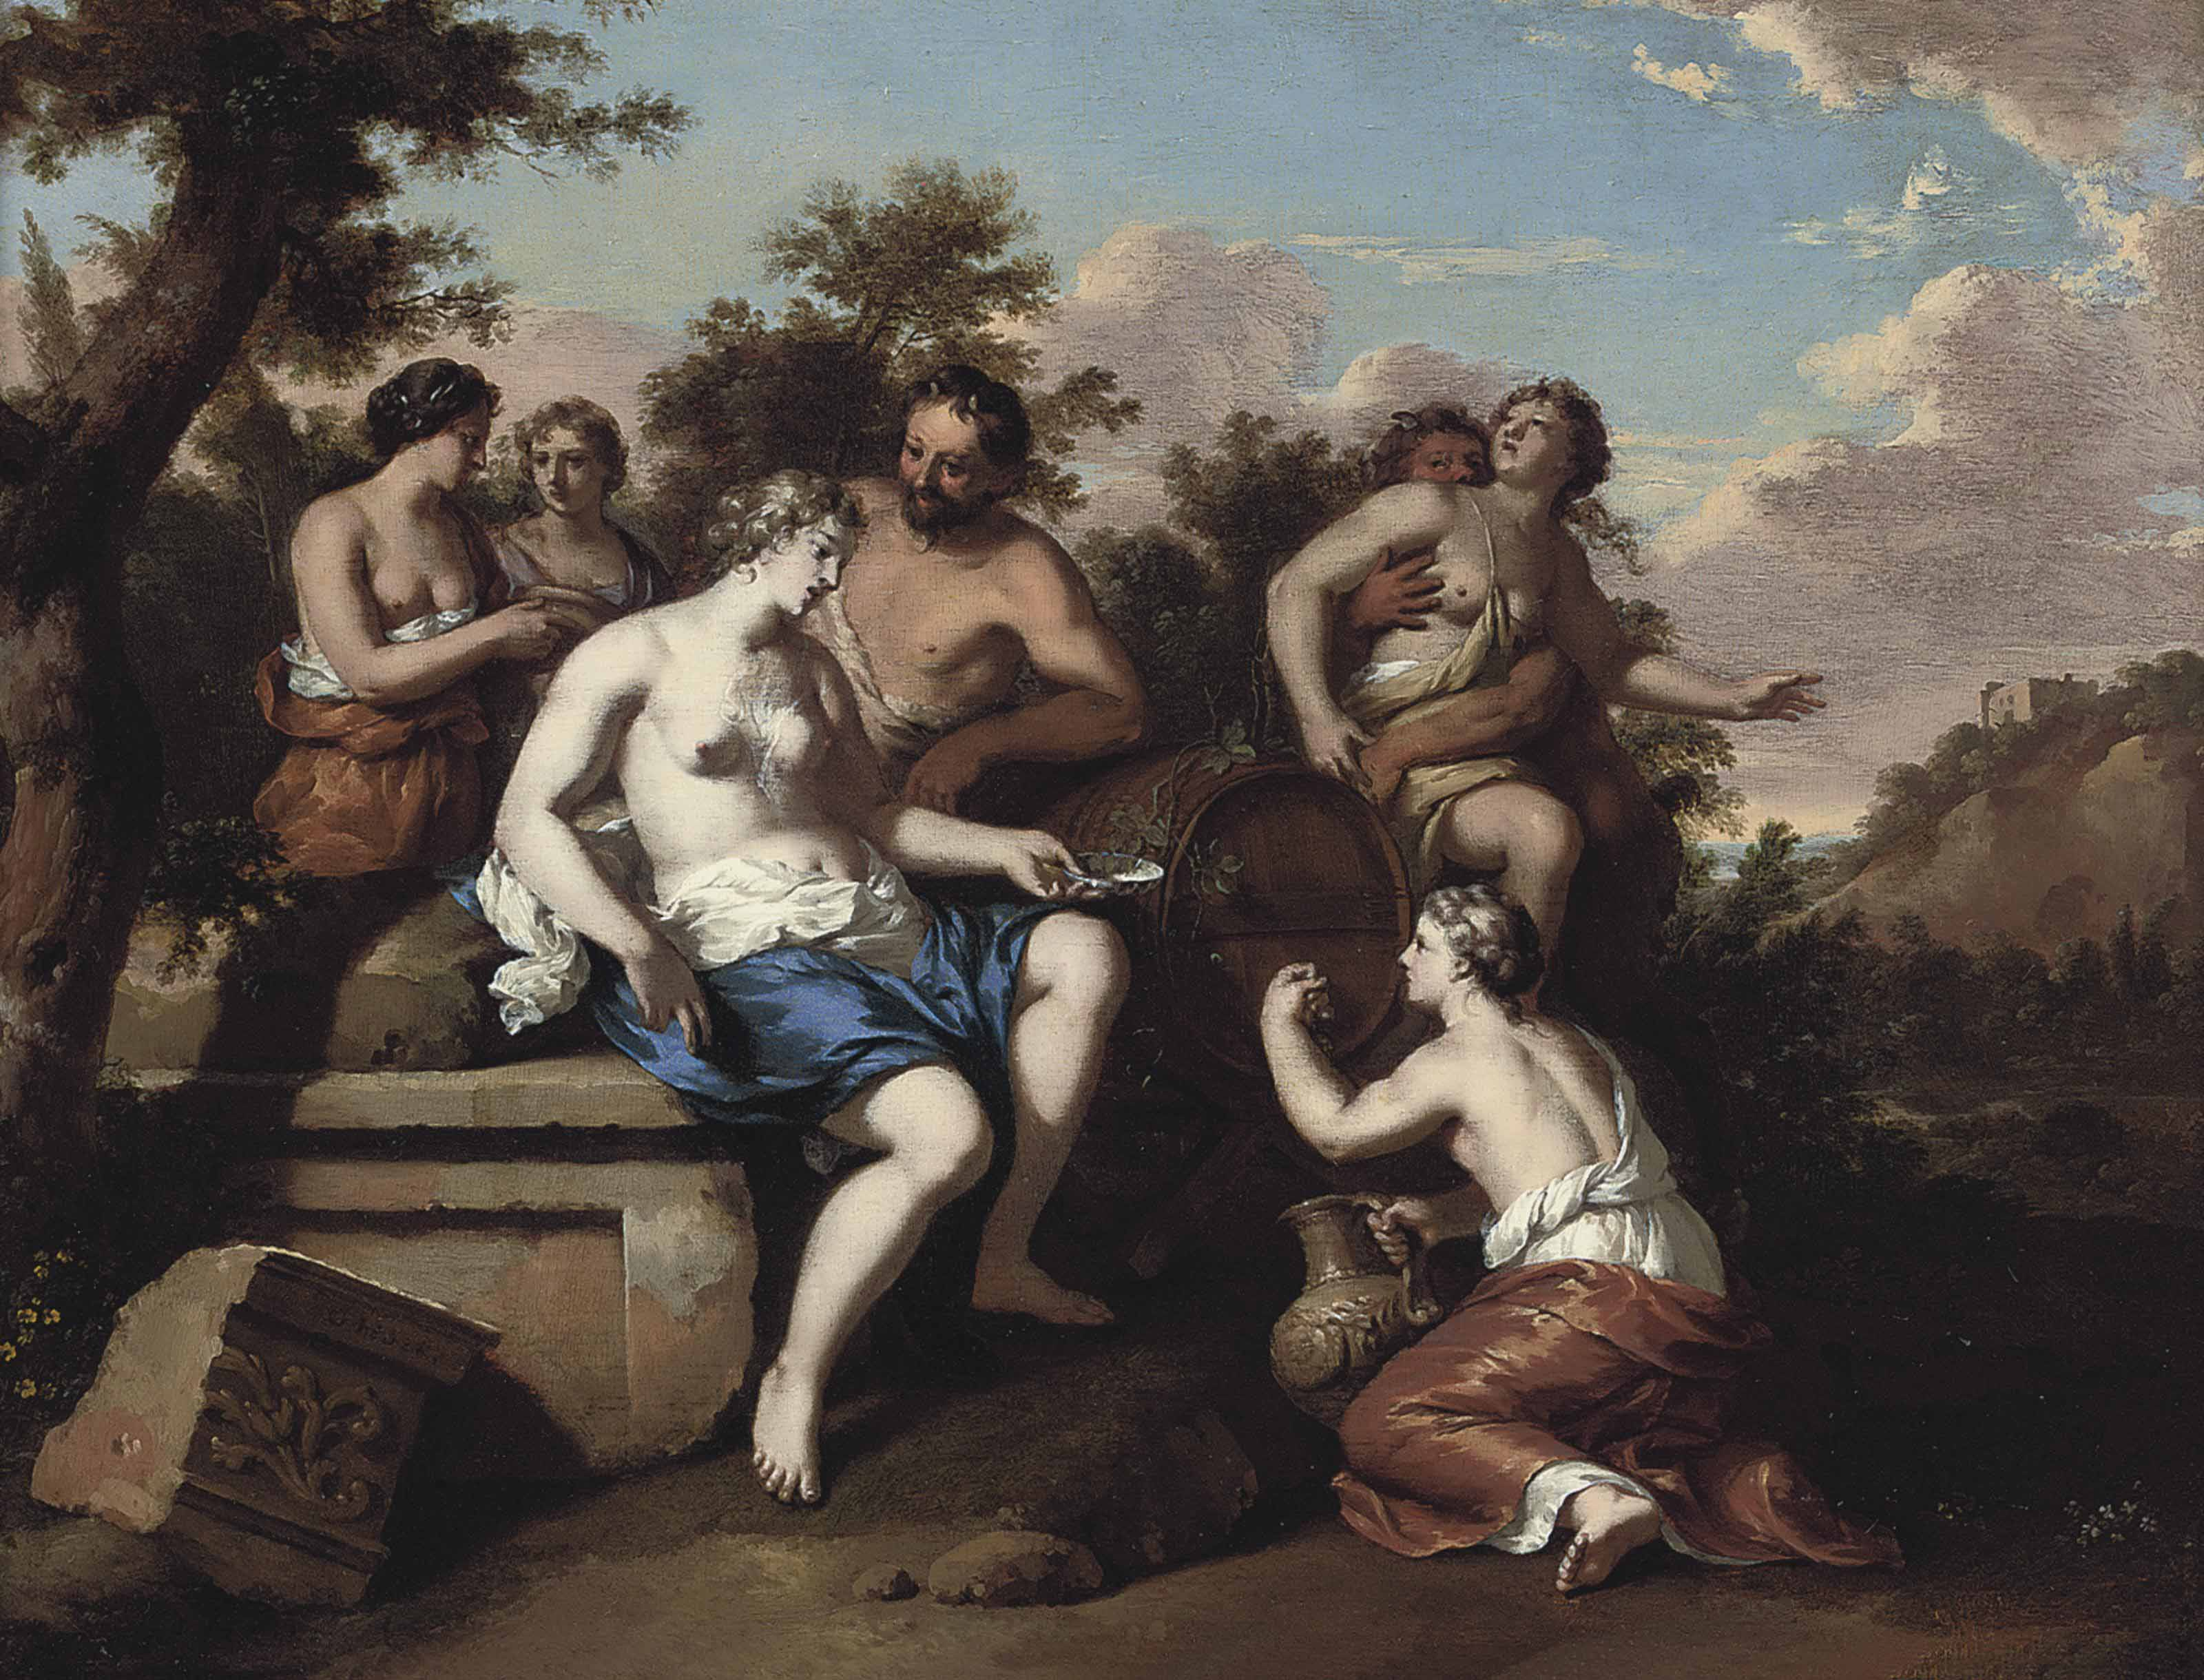 A Bacchanal with nymphs and satyrs